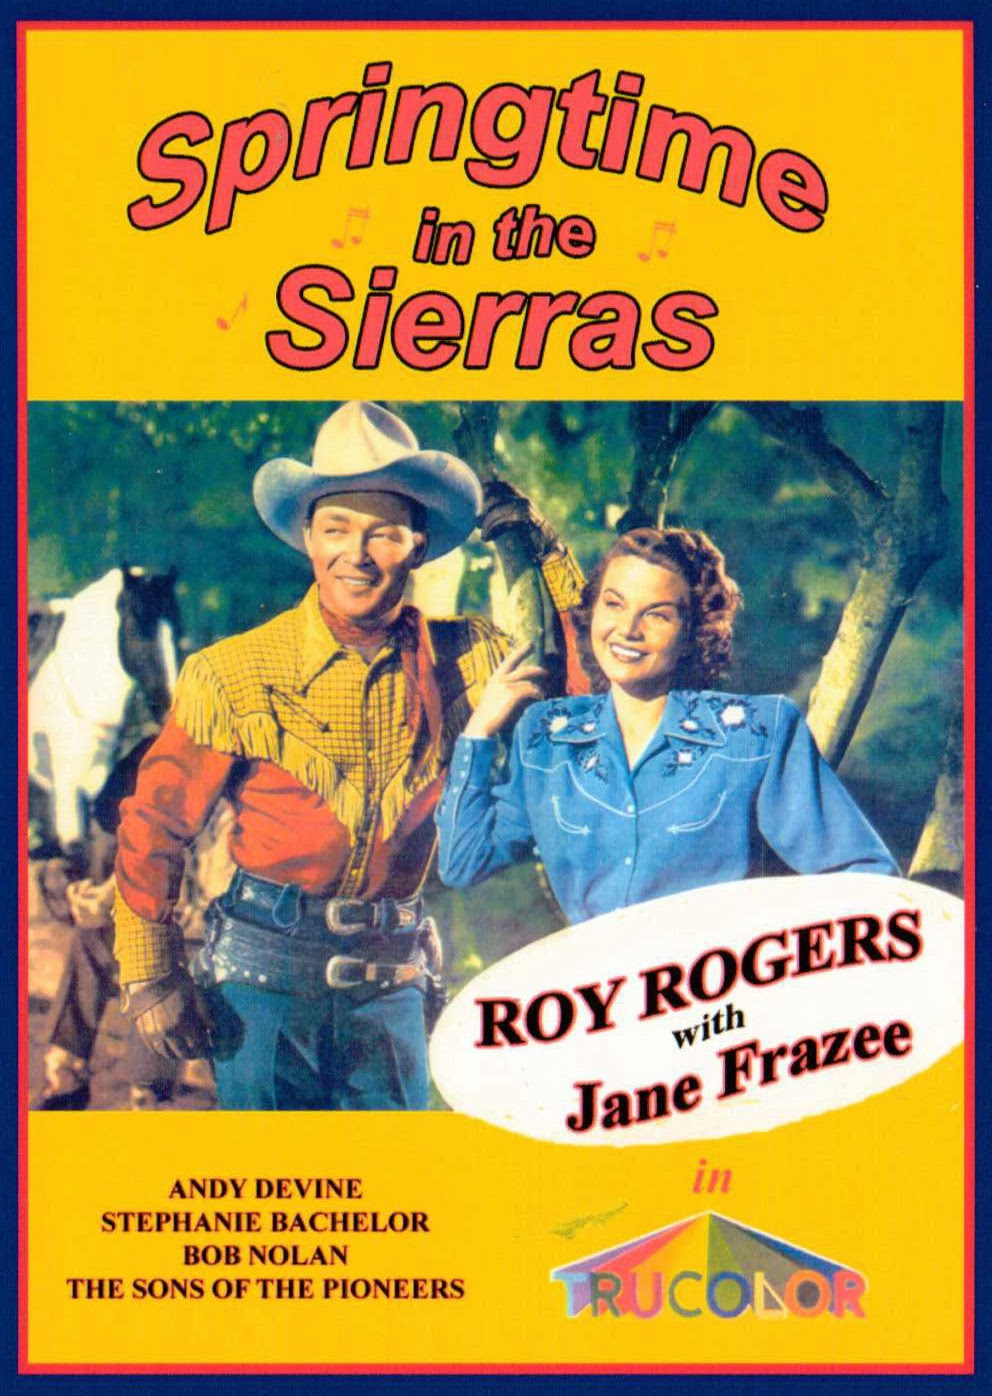 Roy Rogers in Springtime in the Sierras featuring Jane Frazee